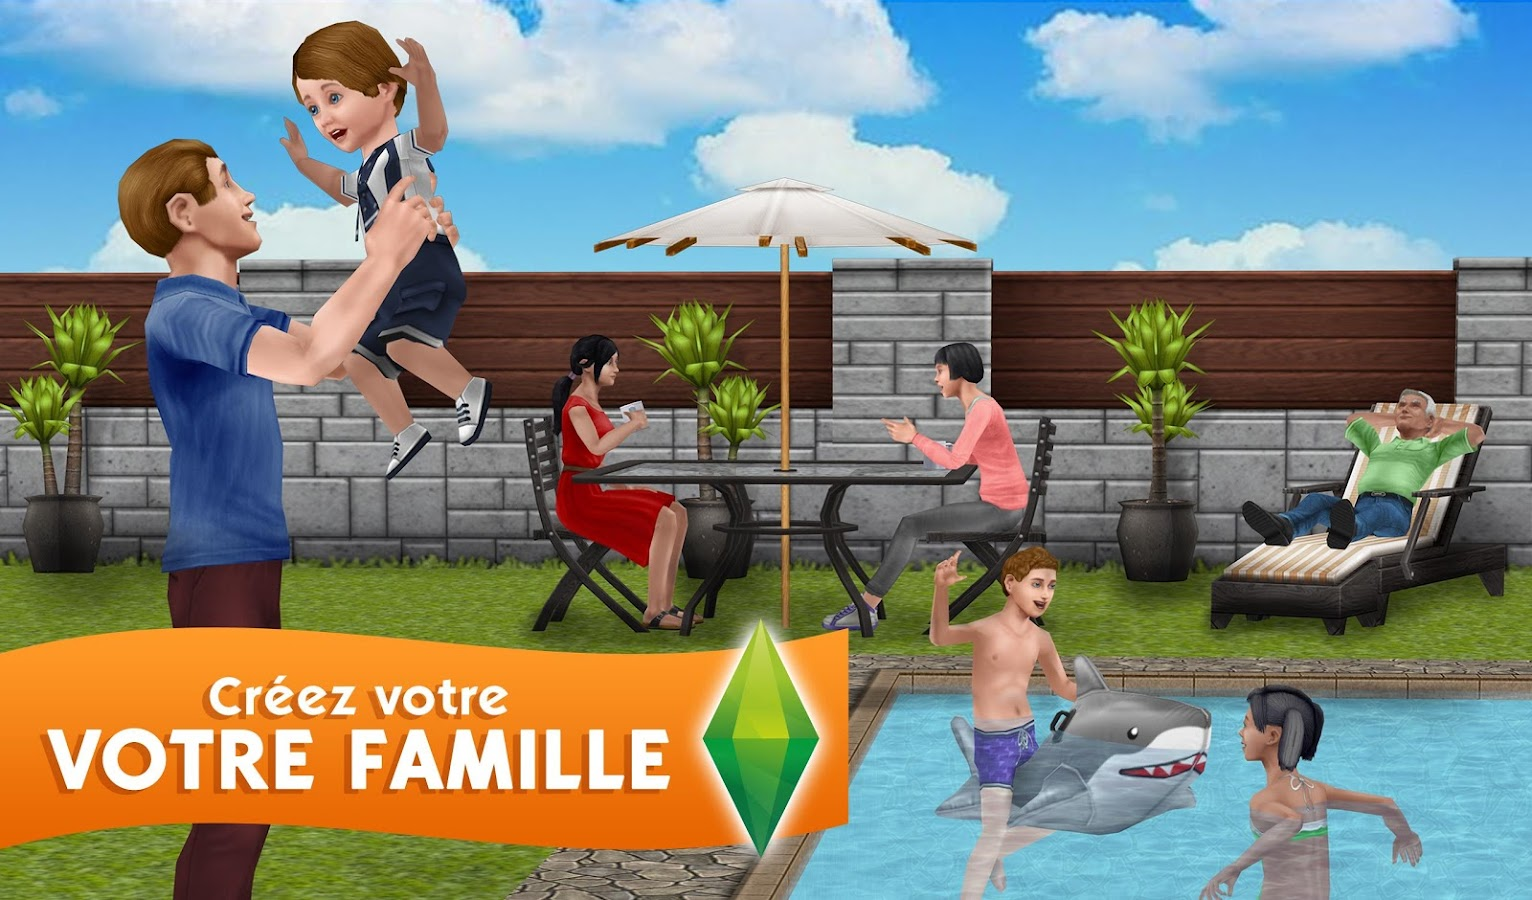 Les Sims Freeplay Applications Android Sur Google Play